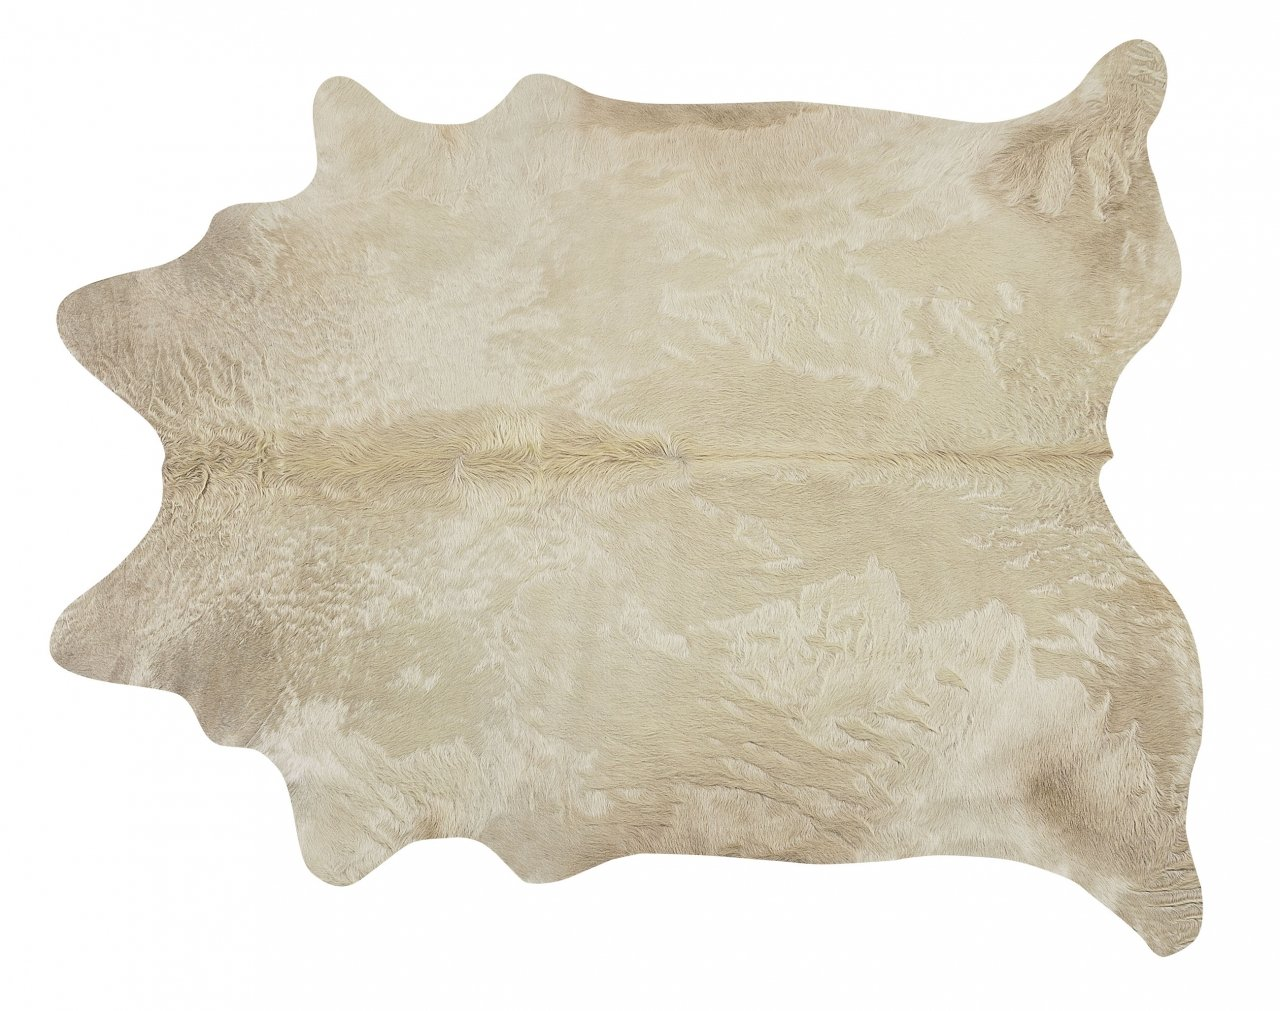 Champagne Brazilian Cowhide Rug Cow Hide Area Rugs - Size XL